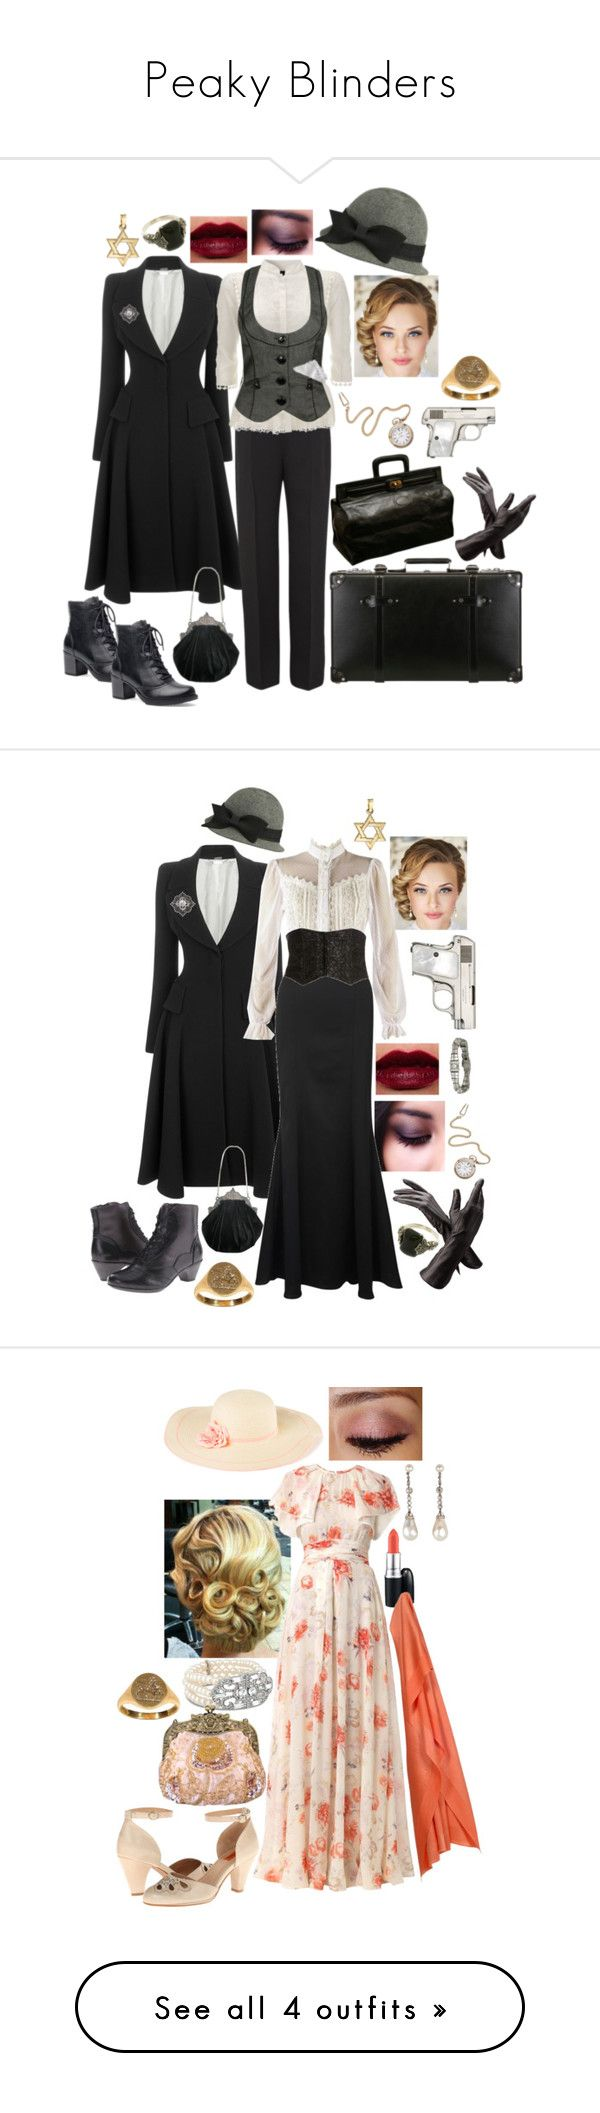 """Peaky Blinders"" by scarletblaze13 ❤ liked on Polyvore featuring Alexander McQueen, Forever 21, Bulova, Giorgio Armani, Globe-Trotter, Dansko, Aspinal of London, women's clothing, women's fashion and women"